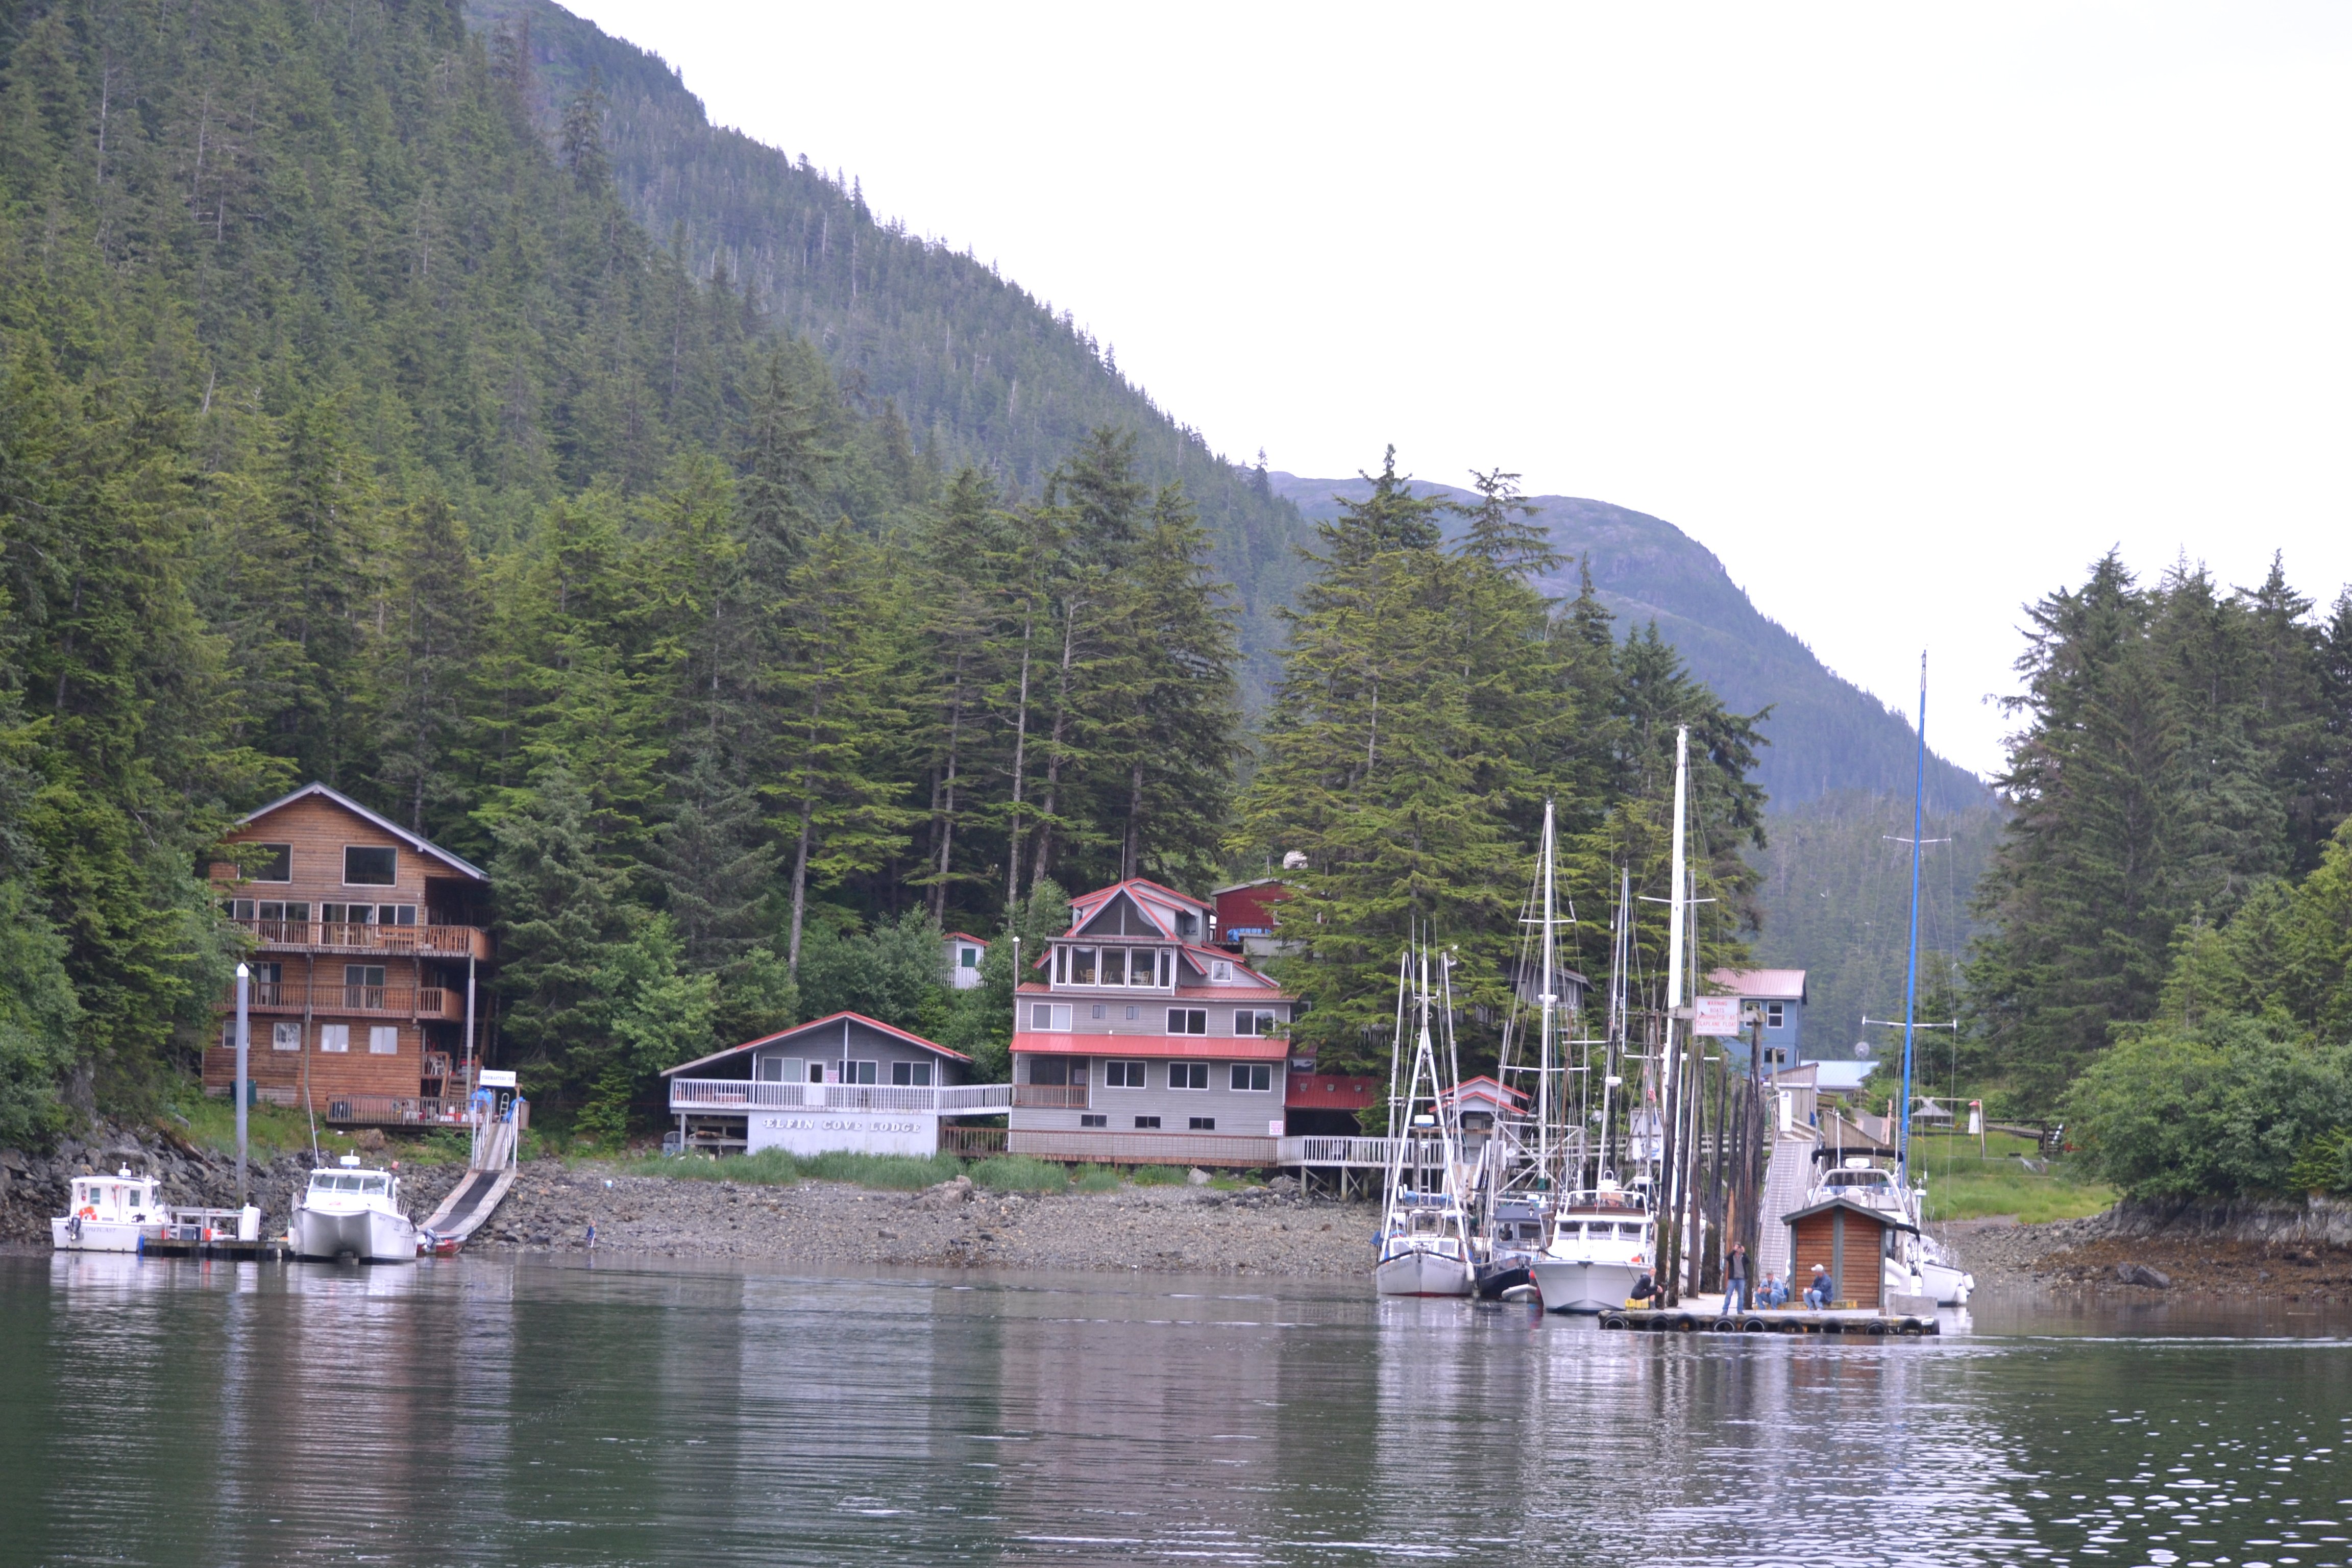 elfin cove divorced singles Your elfin cove real estate search starts here view 0 active homes for sale in elfin cove, ak and find your dream home, condo, townhome, or single family home with property listings on realtorcom.